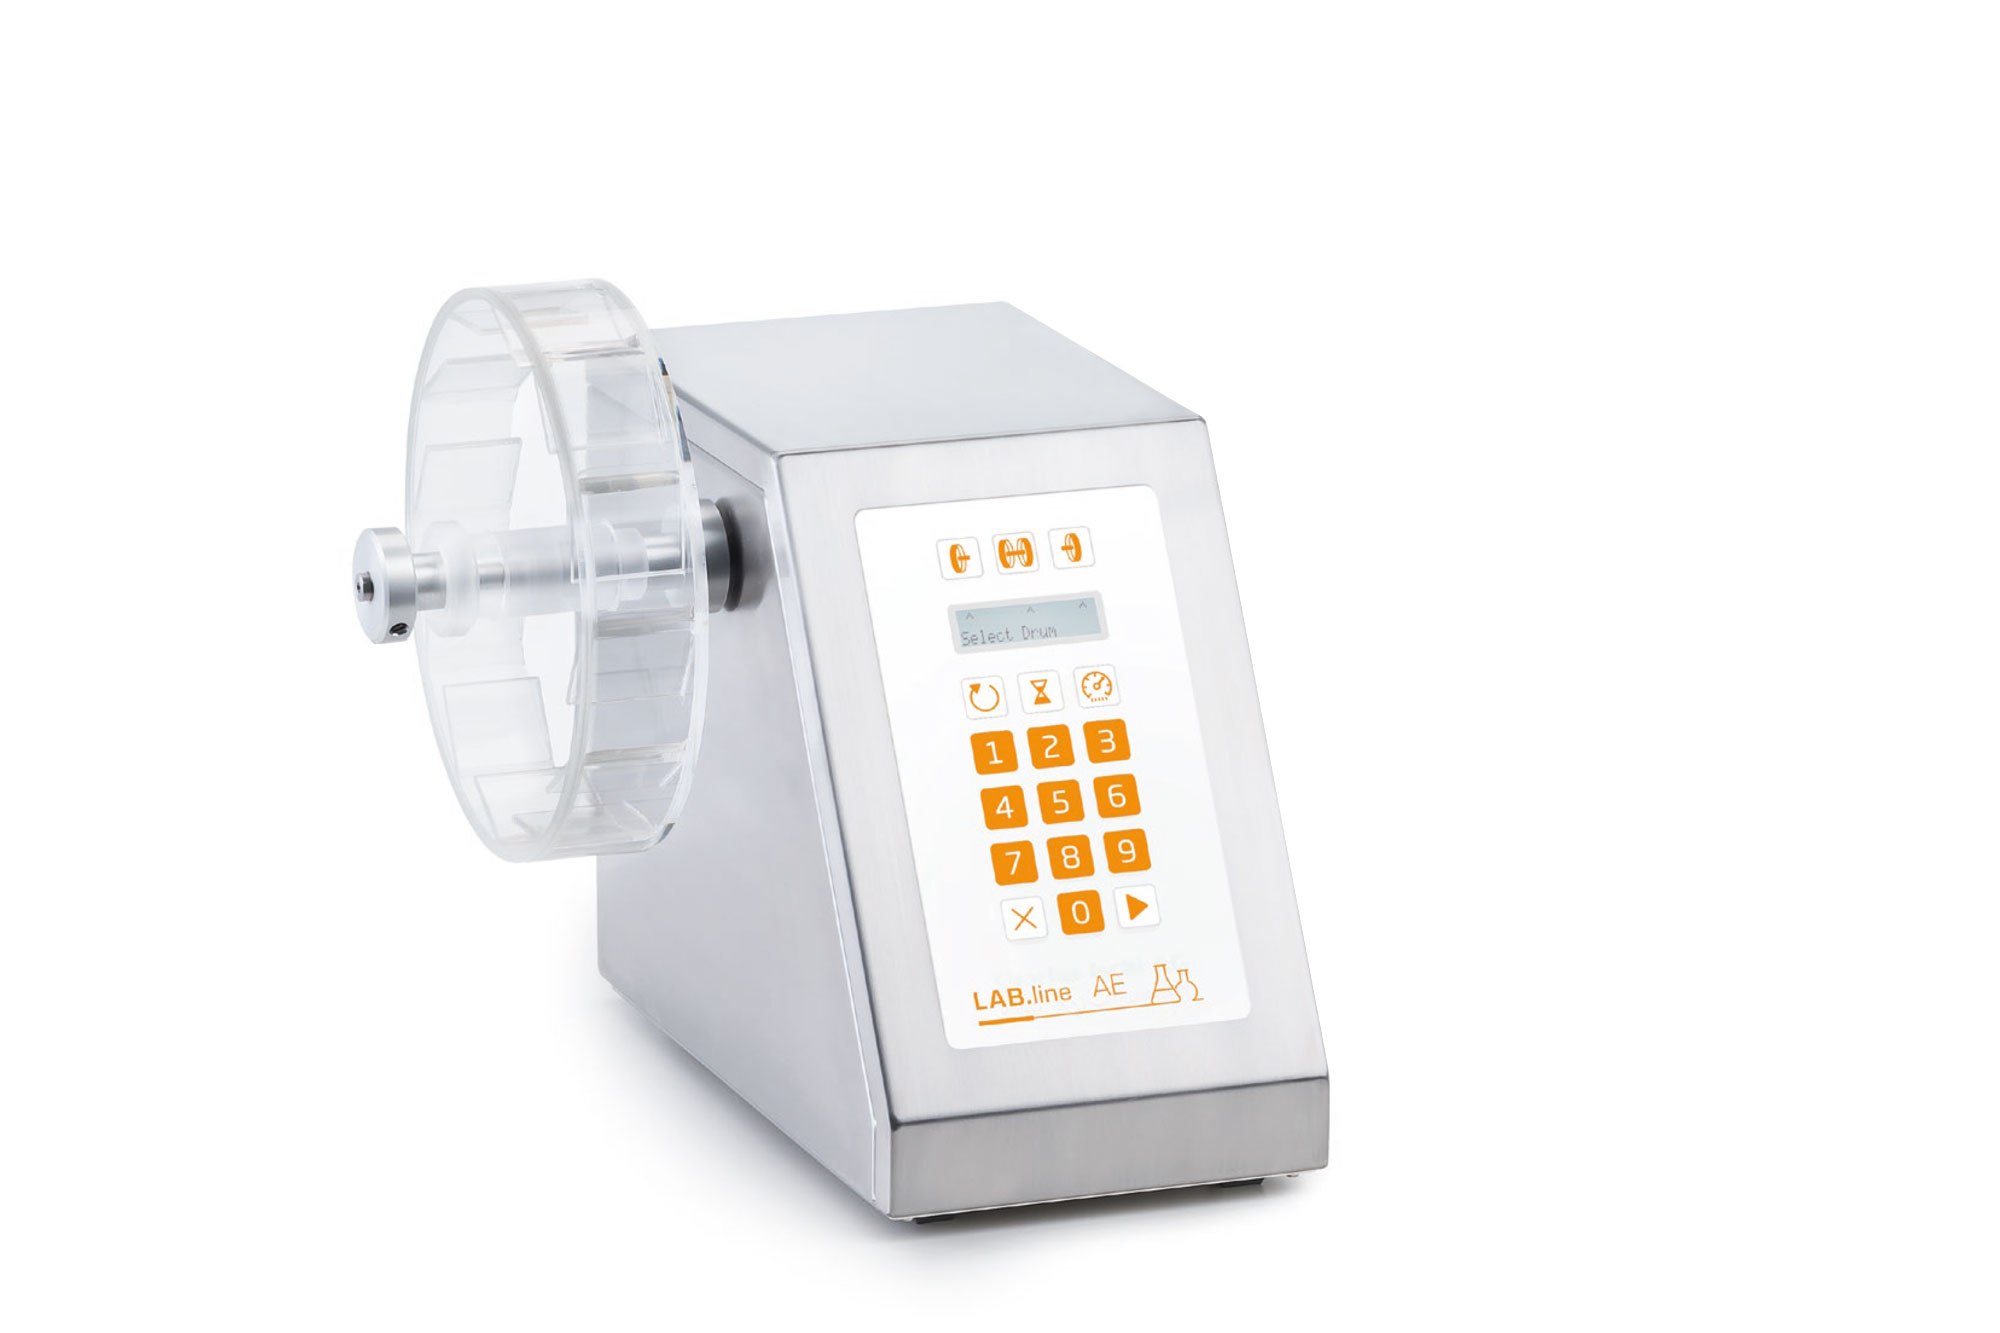 Charles Ischi tablet friability and abrasion testing